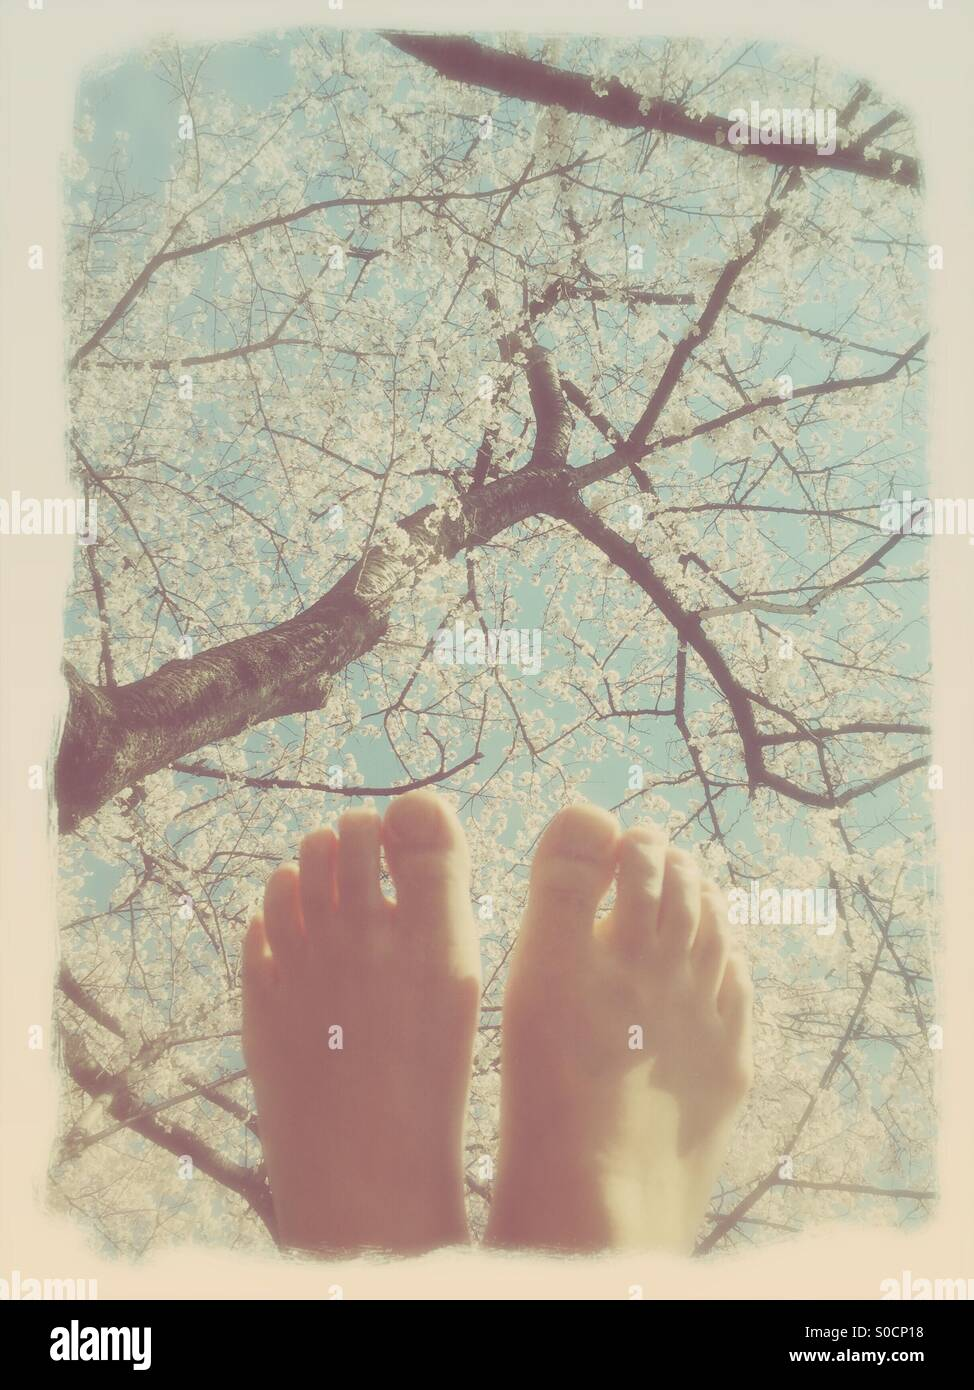 Feet held up in front of white sakura or cherry blossoms in Spring, with soft blue sky and vintage paper texture - Stock Image